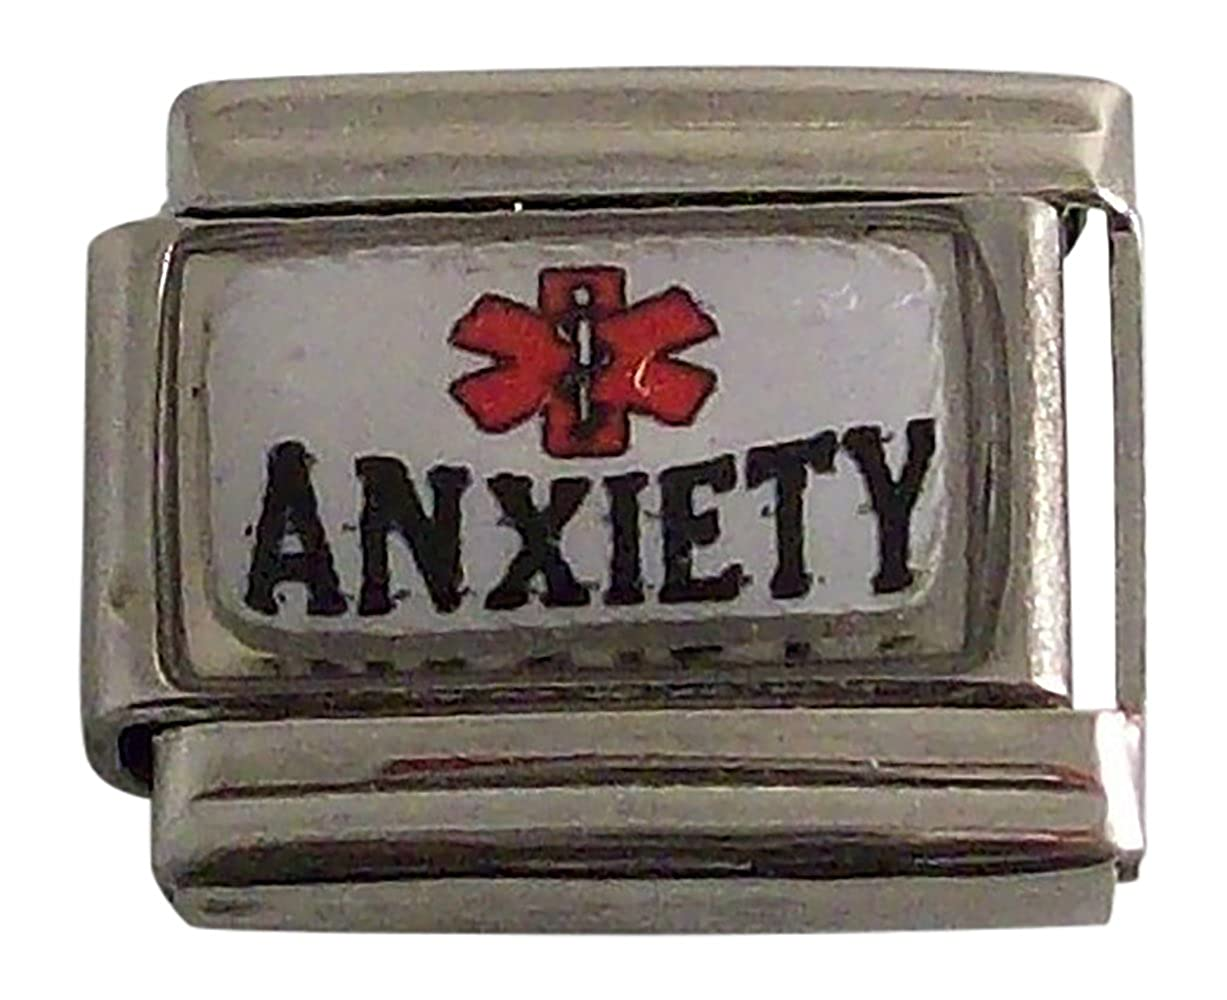 Gadow Jewelry 2 Anxiety Medical ID Alert Italian Charms JKUM-577